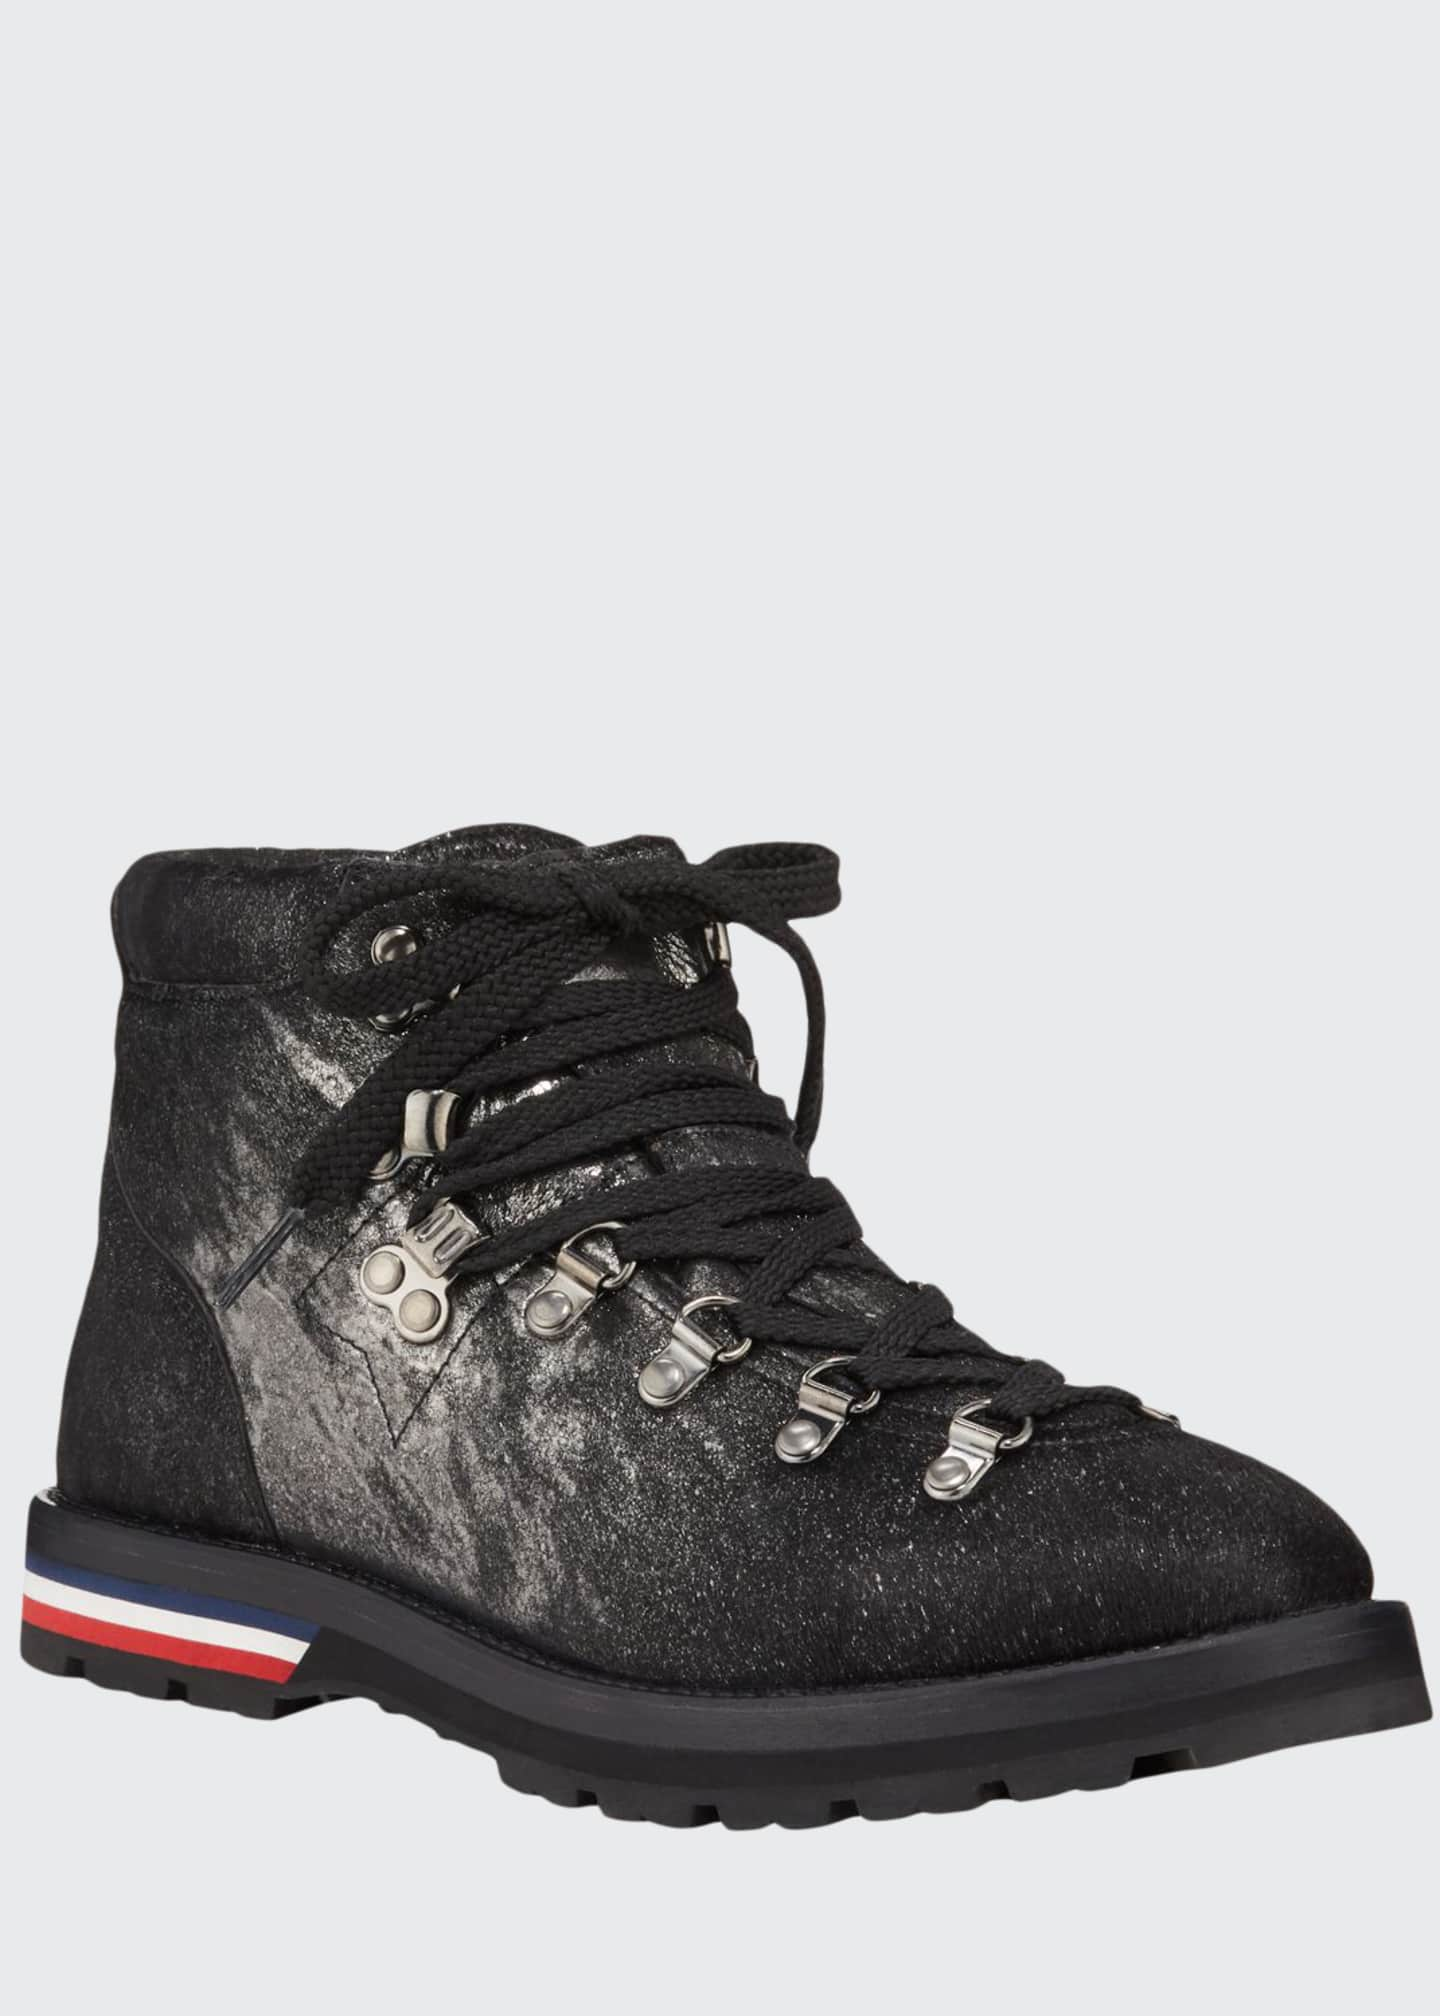 Moncler Blanche Scarpa Textured Boots